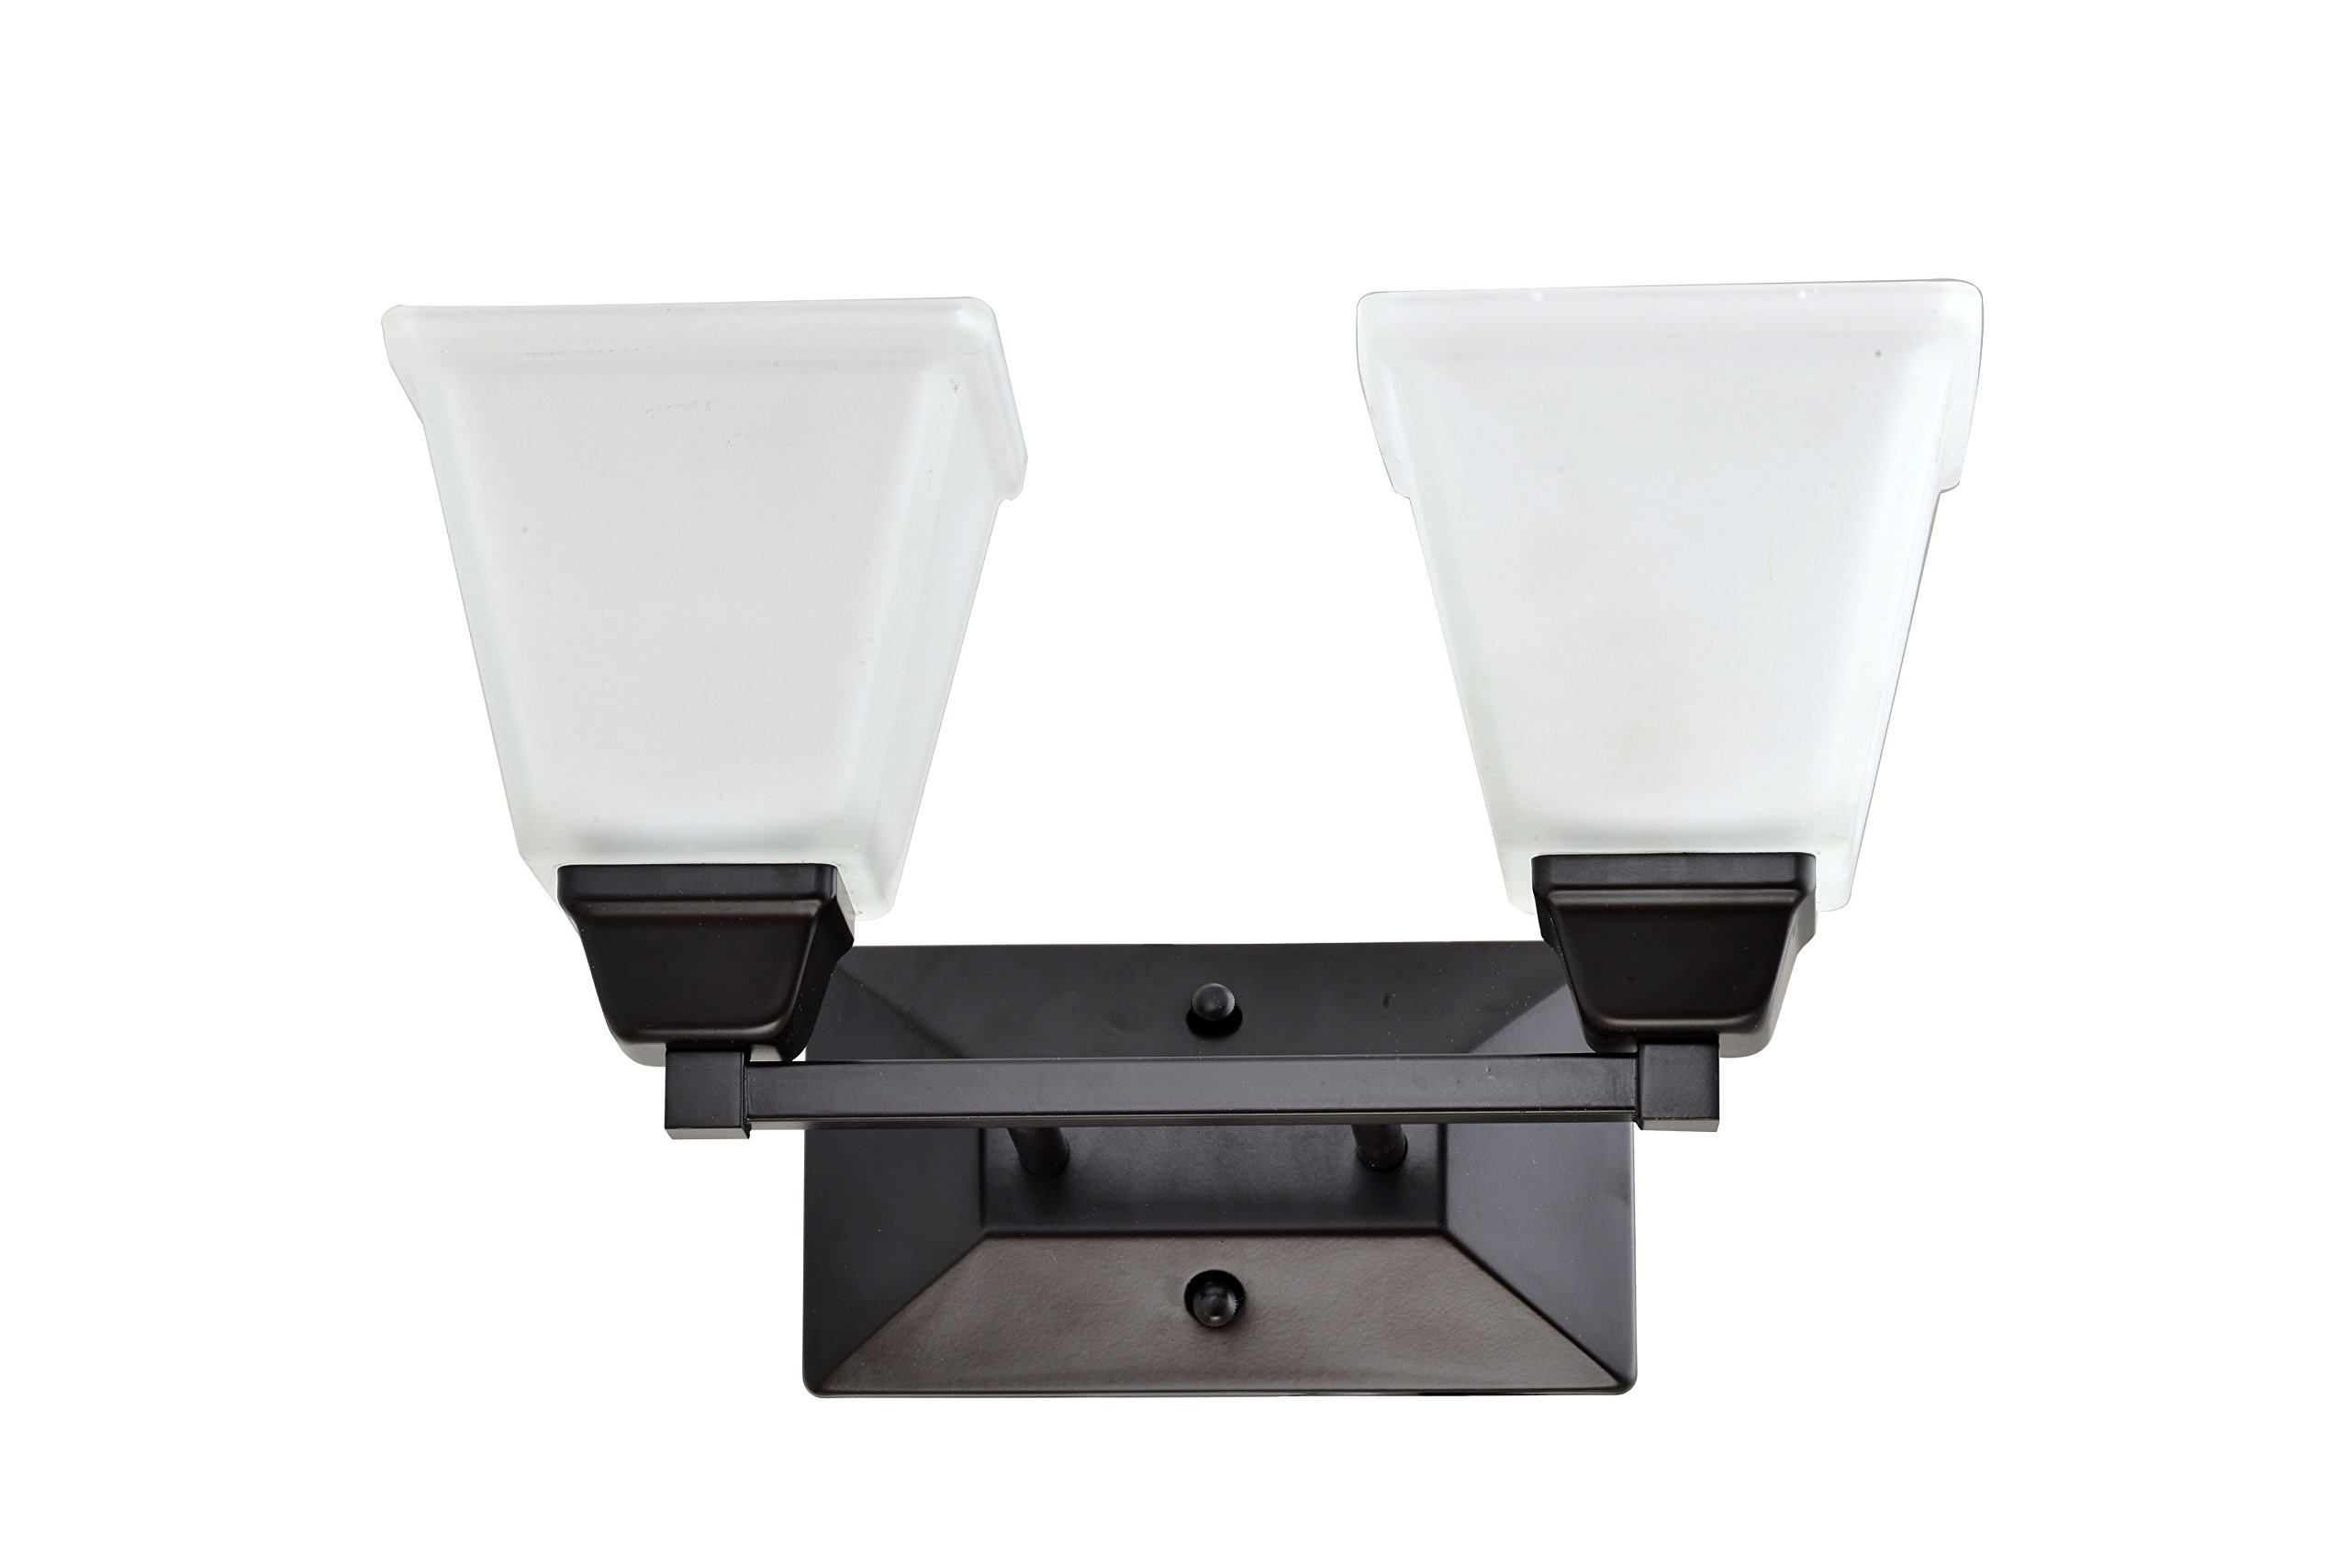 IN HOME 2-Light VANITY/BATHROOM FIXTURE VF37, Oil Rubbed Bronze Finish with Satin Etched Glass Shade, UL listed